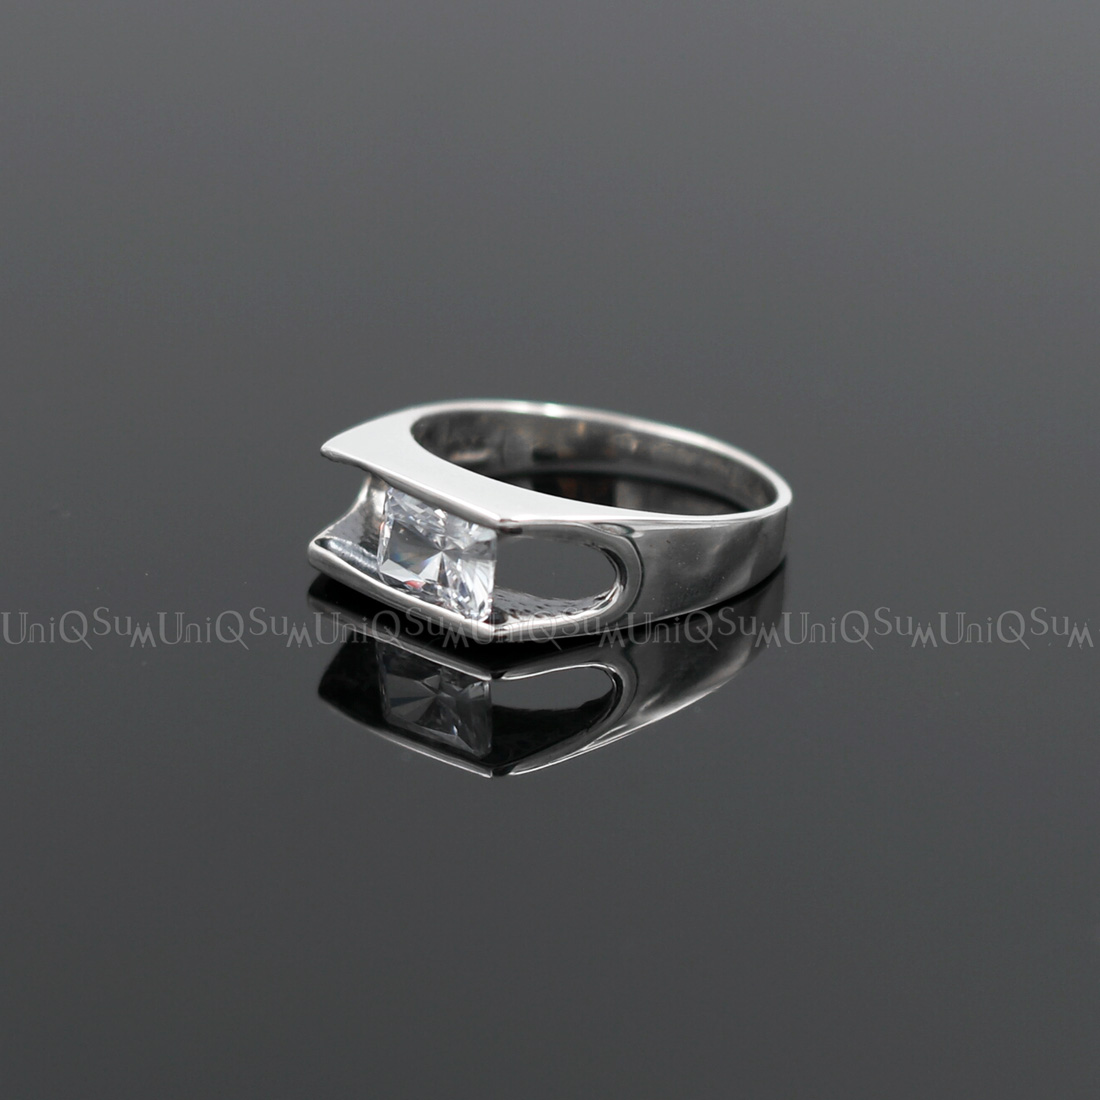 655d780919881 Movable 925 sterling silver Transparent Cubic zirconia Ring